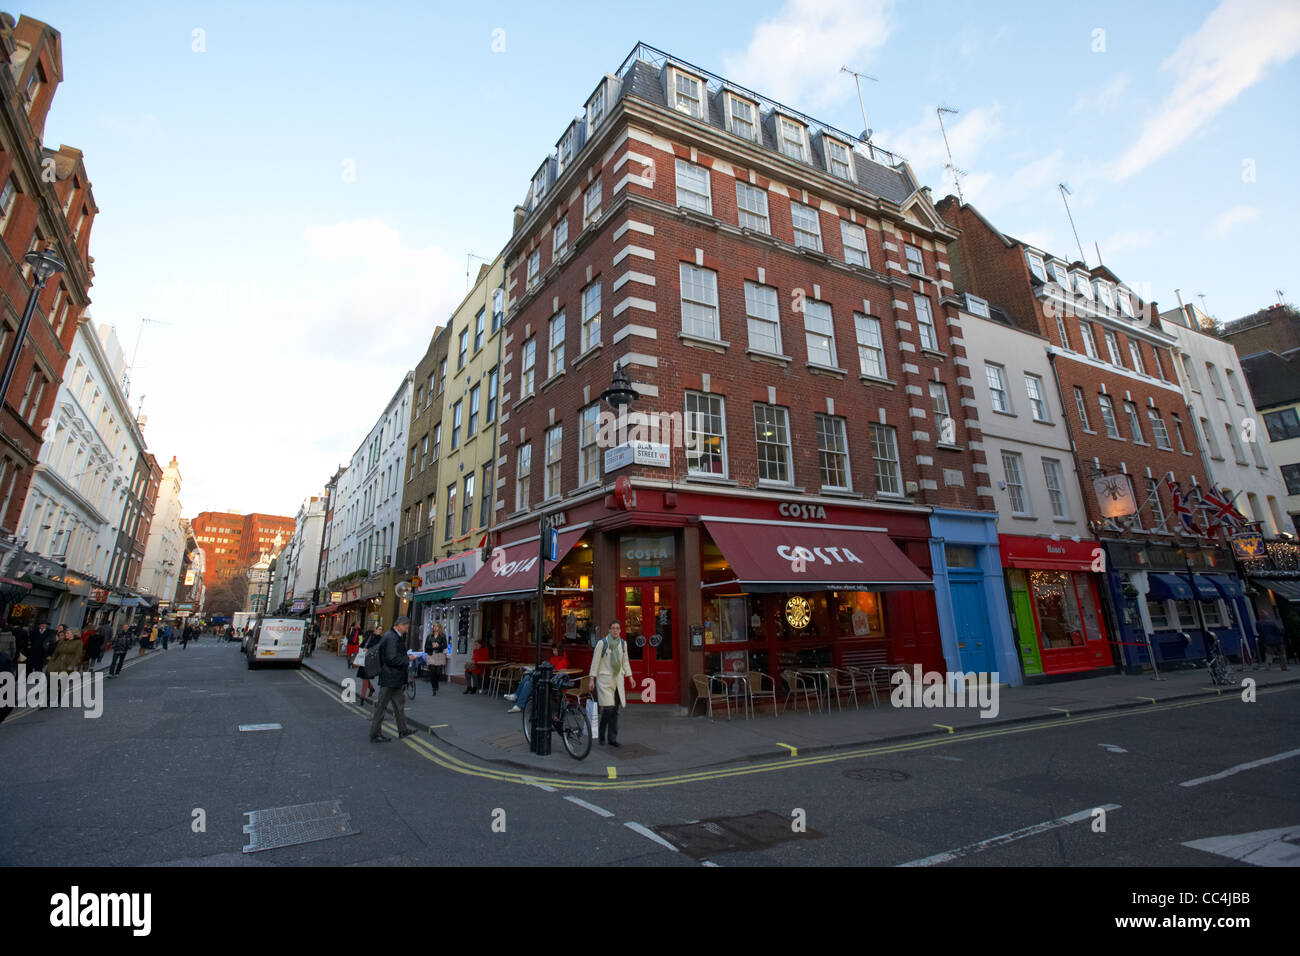 junction of old compton street and dean street in soho London England UK United kingdom - Stock Image